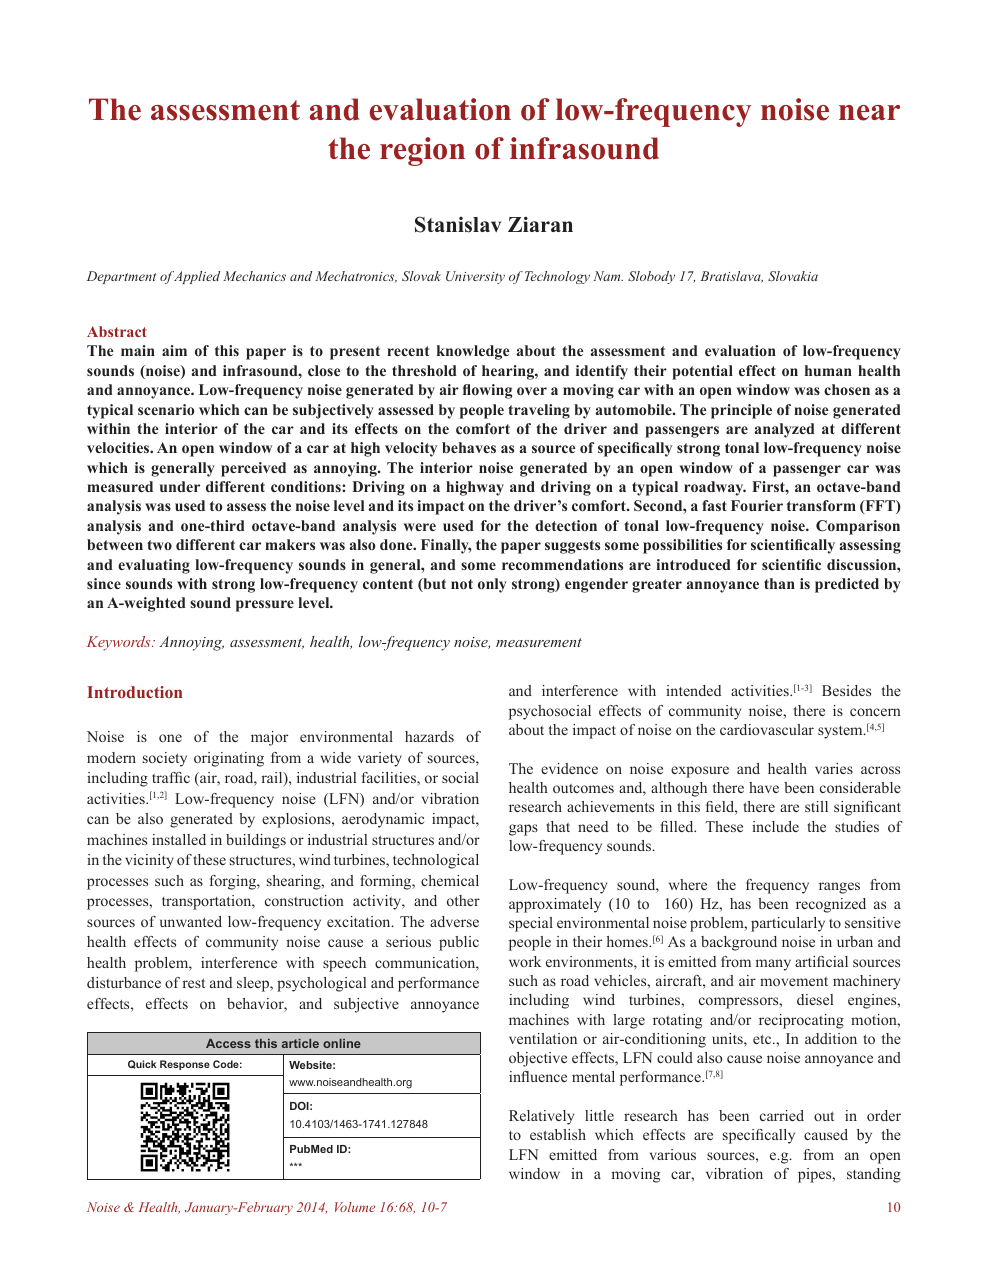 The assessment and evaluation of low-frequency noise near